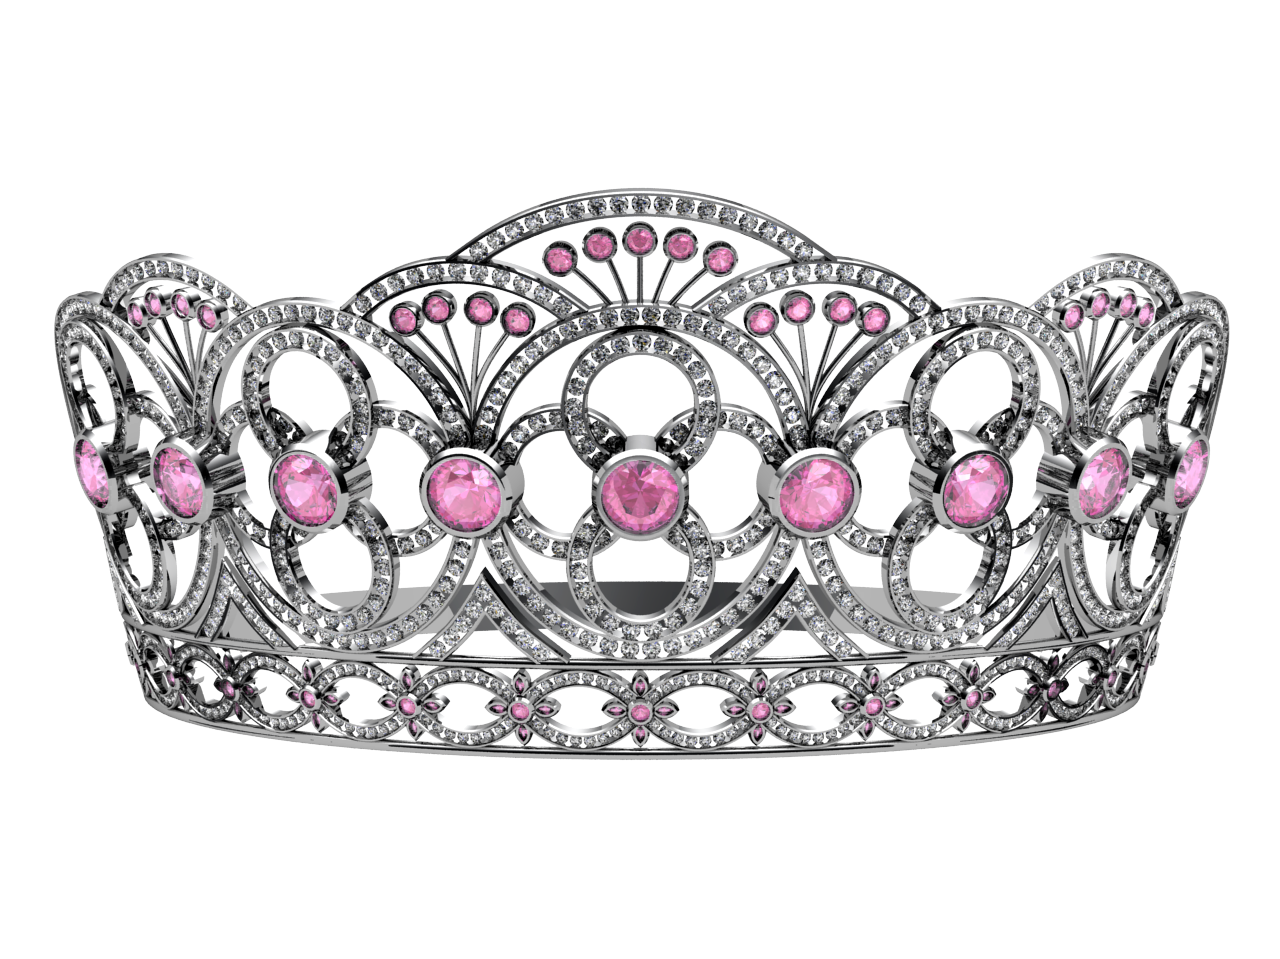 Crown clip art beauty queen crown. Beautiful png images download